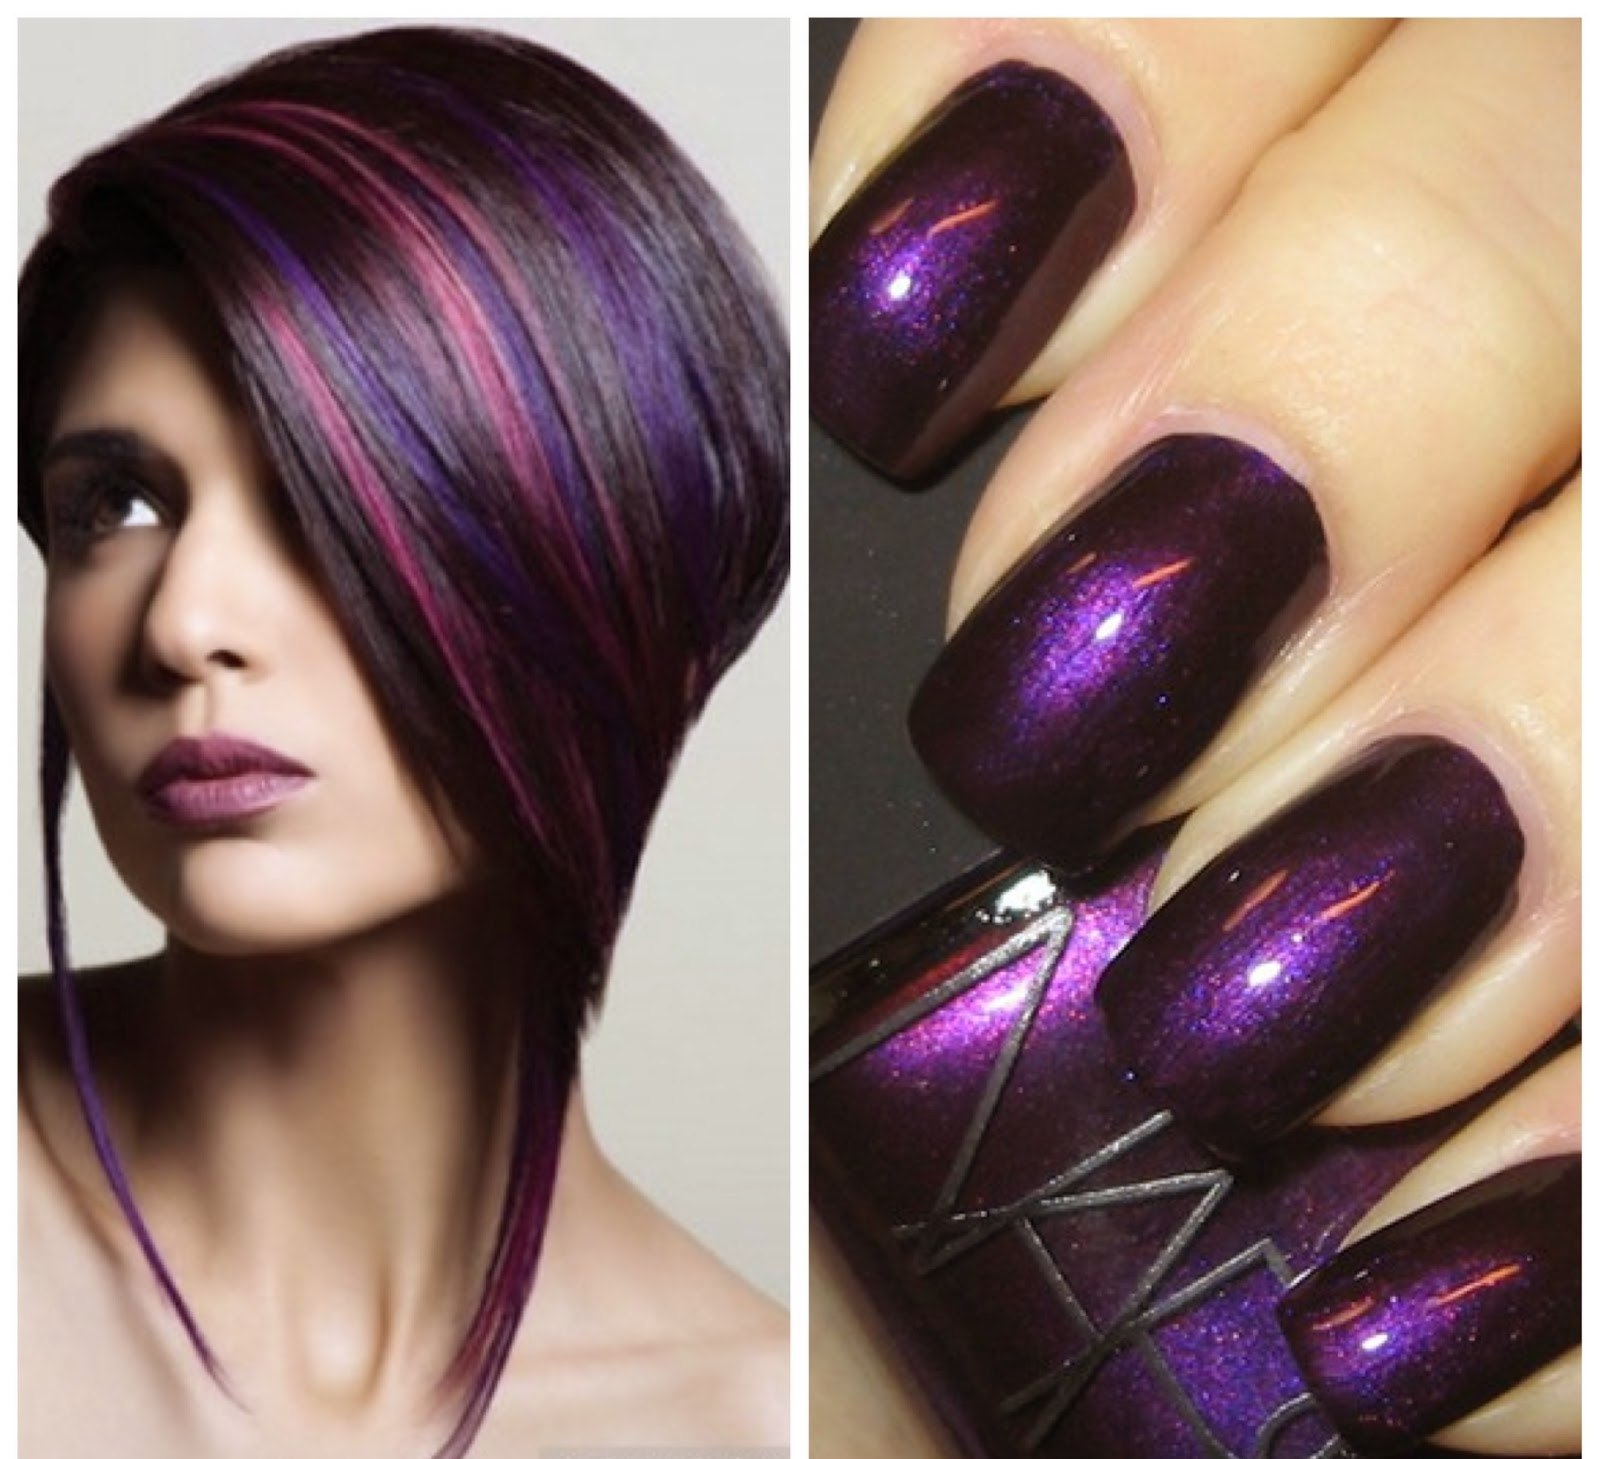 textures-trends-purple-hair-nail-polish